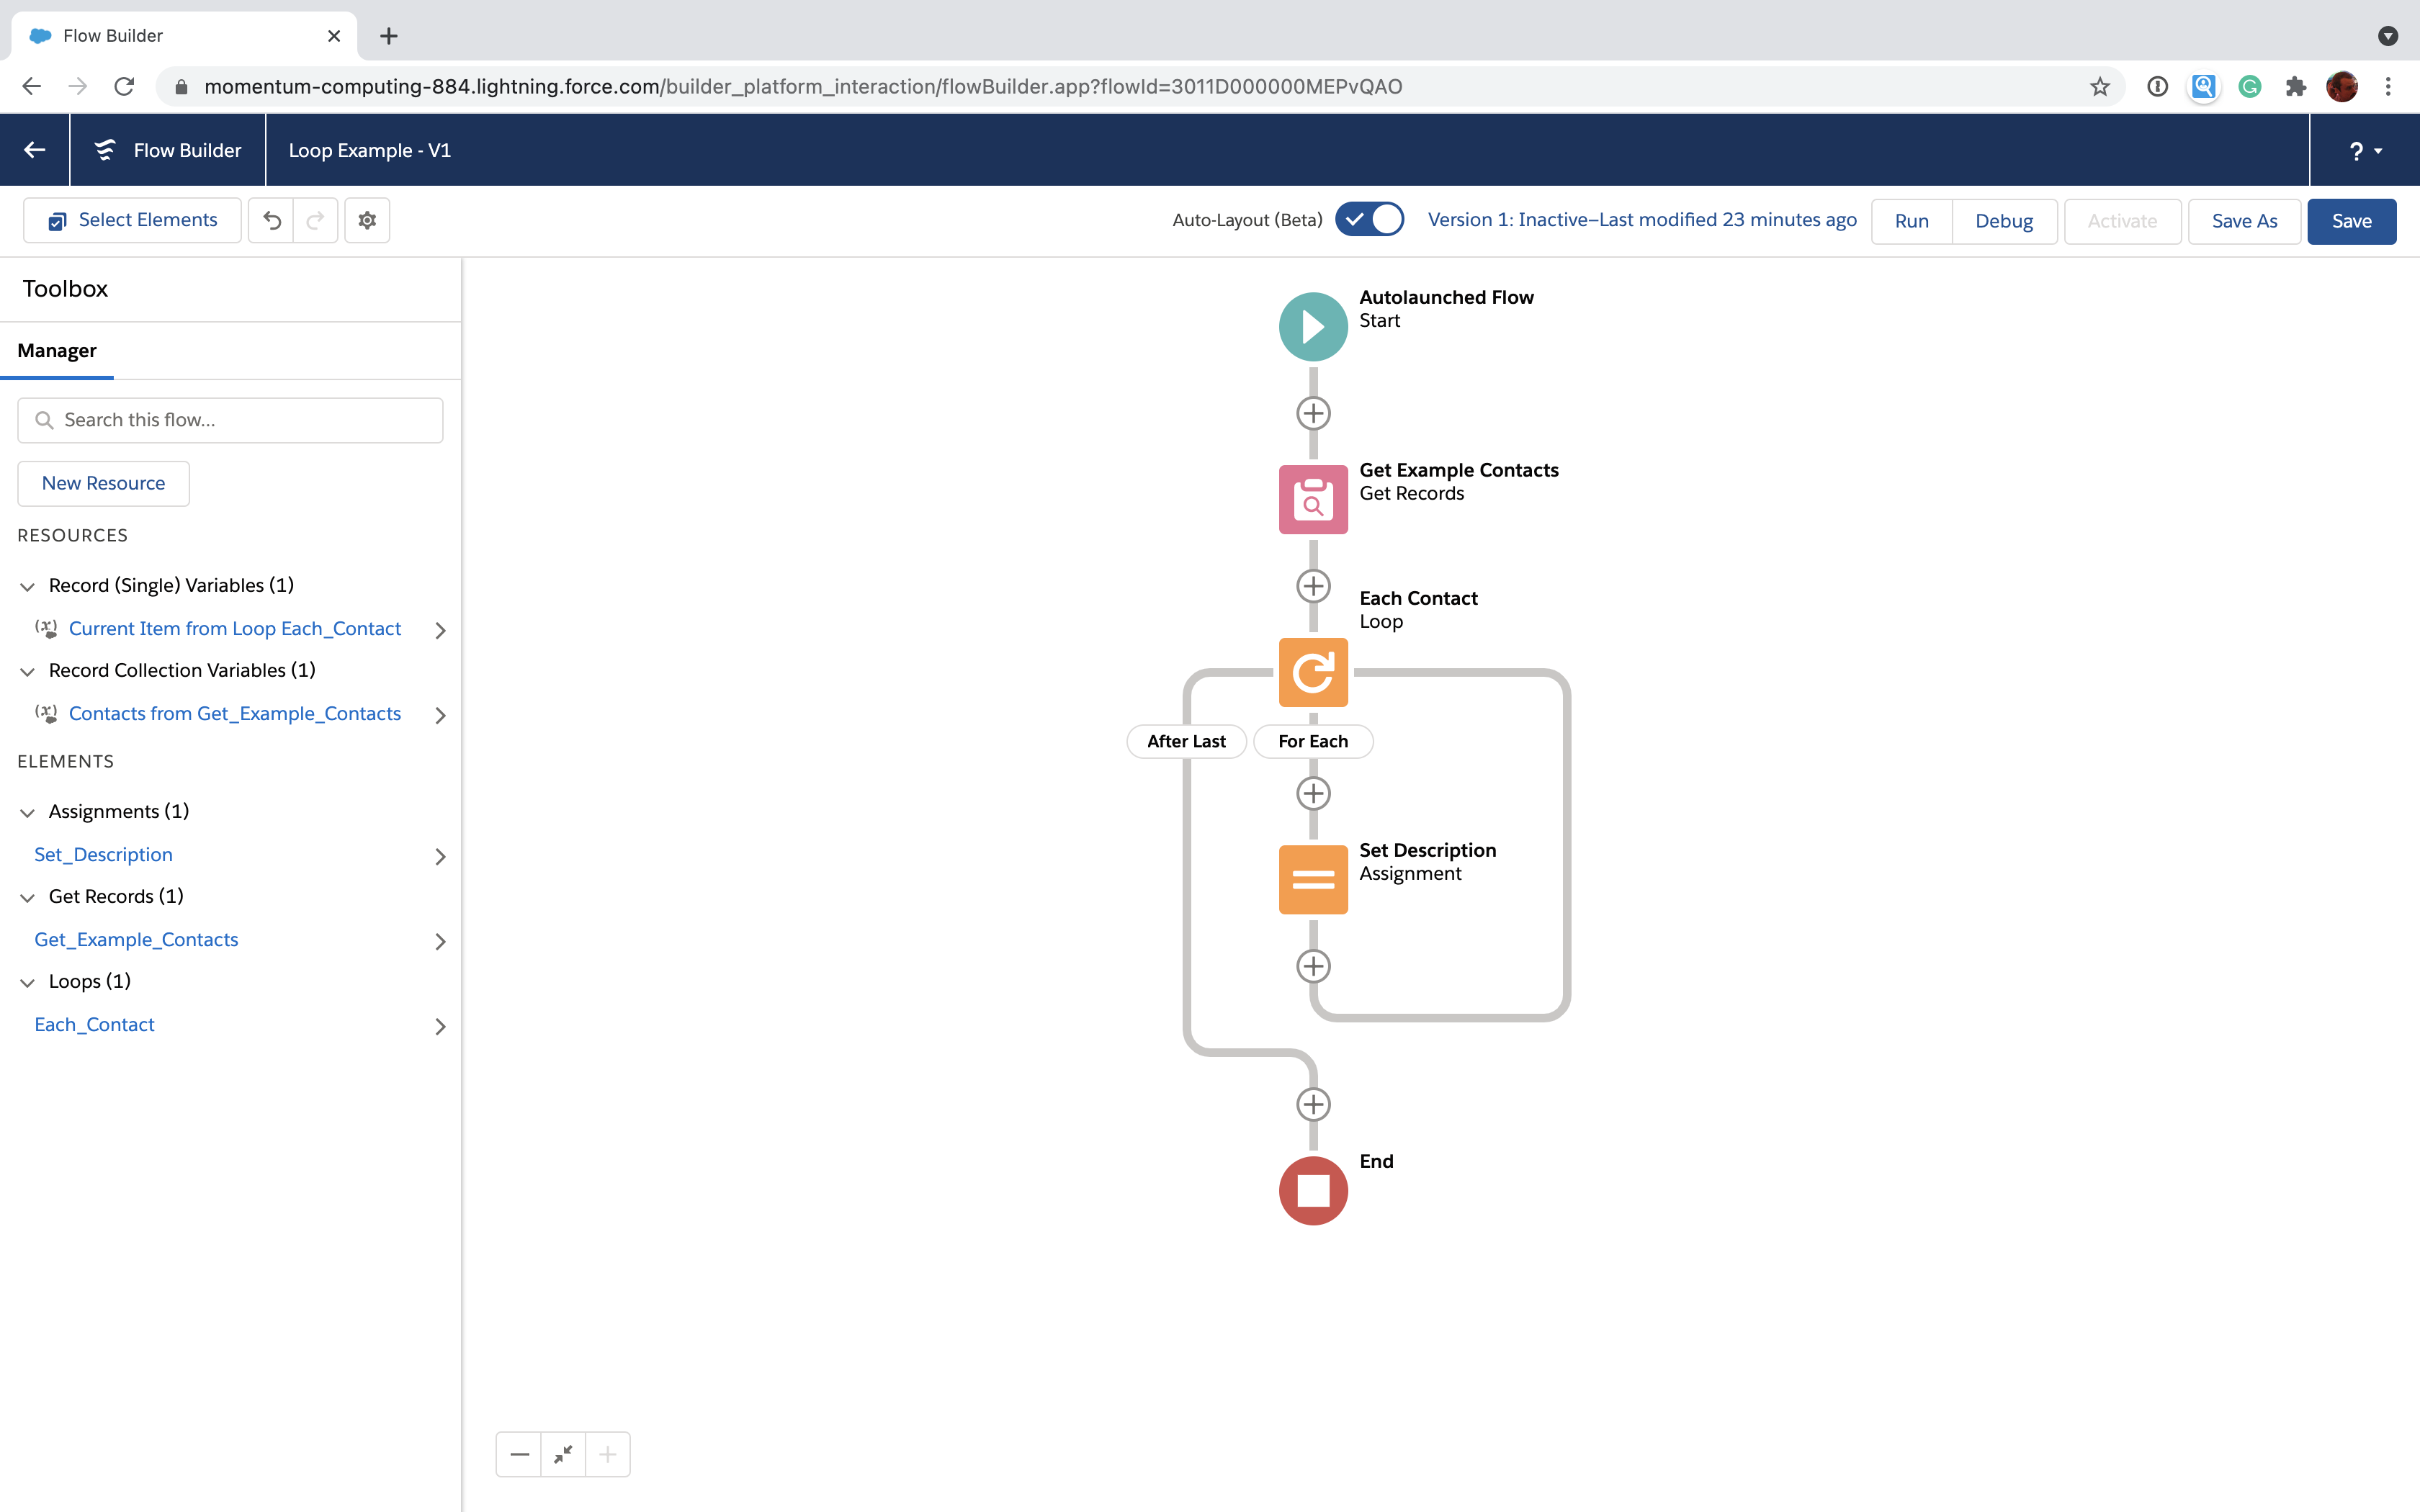 Salesforce Flow with element for each item